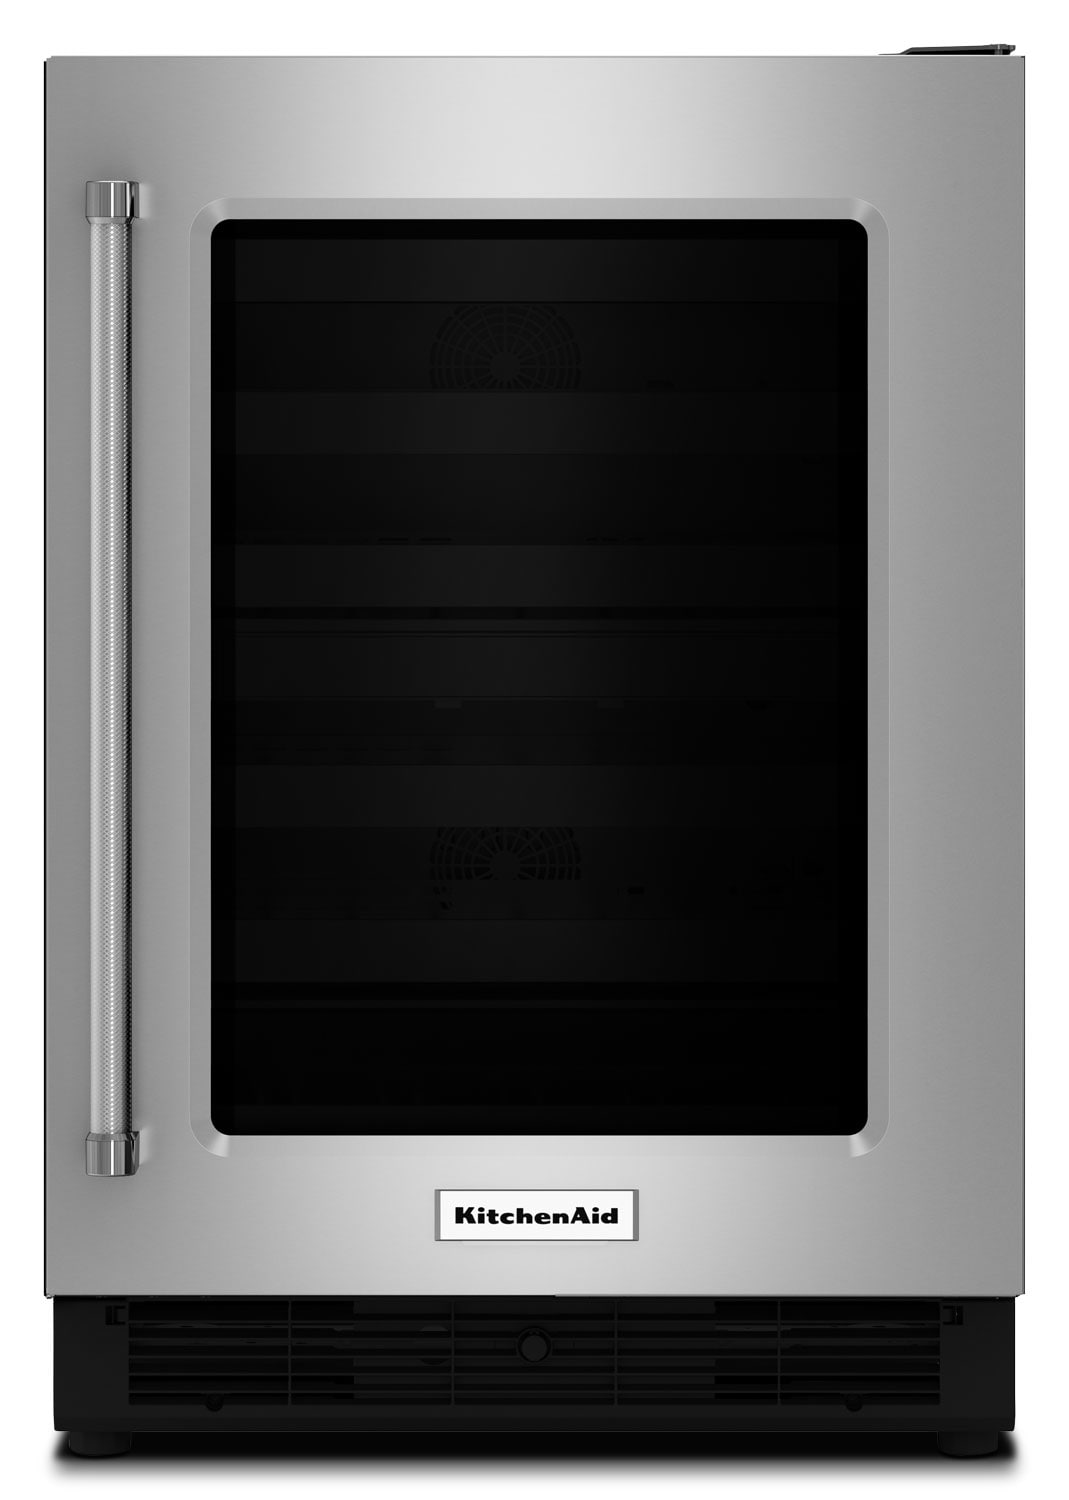 Refrigerators and Freezers - KitchenAid 5.1 Cu. Ft. Glass-Door Undercounter Refrigerator with Right-Door Swing – Stainless Steel